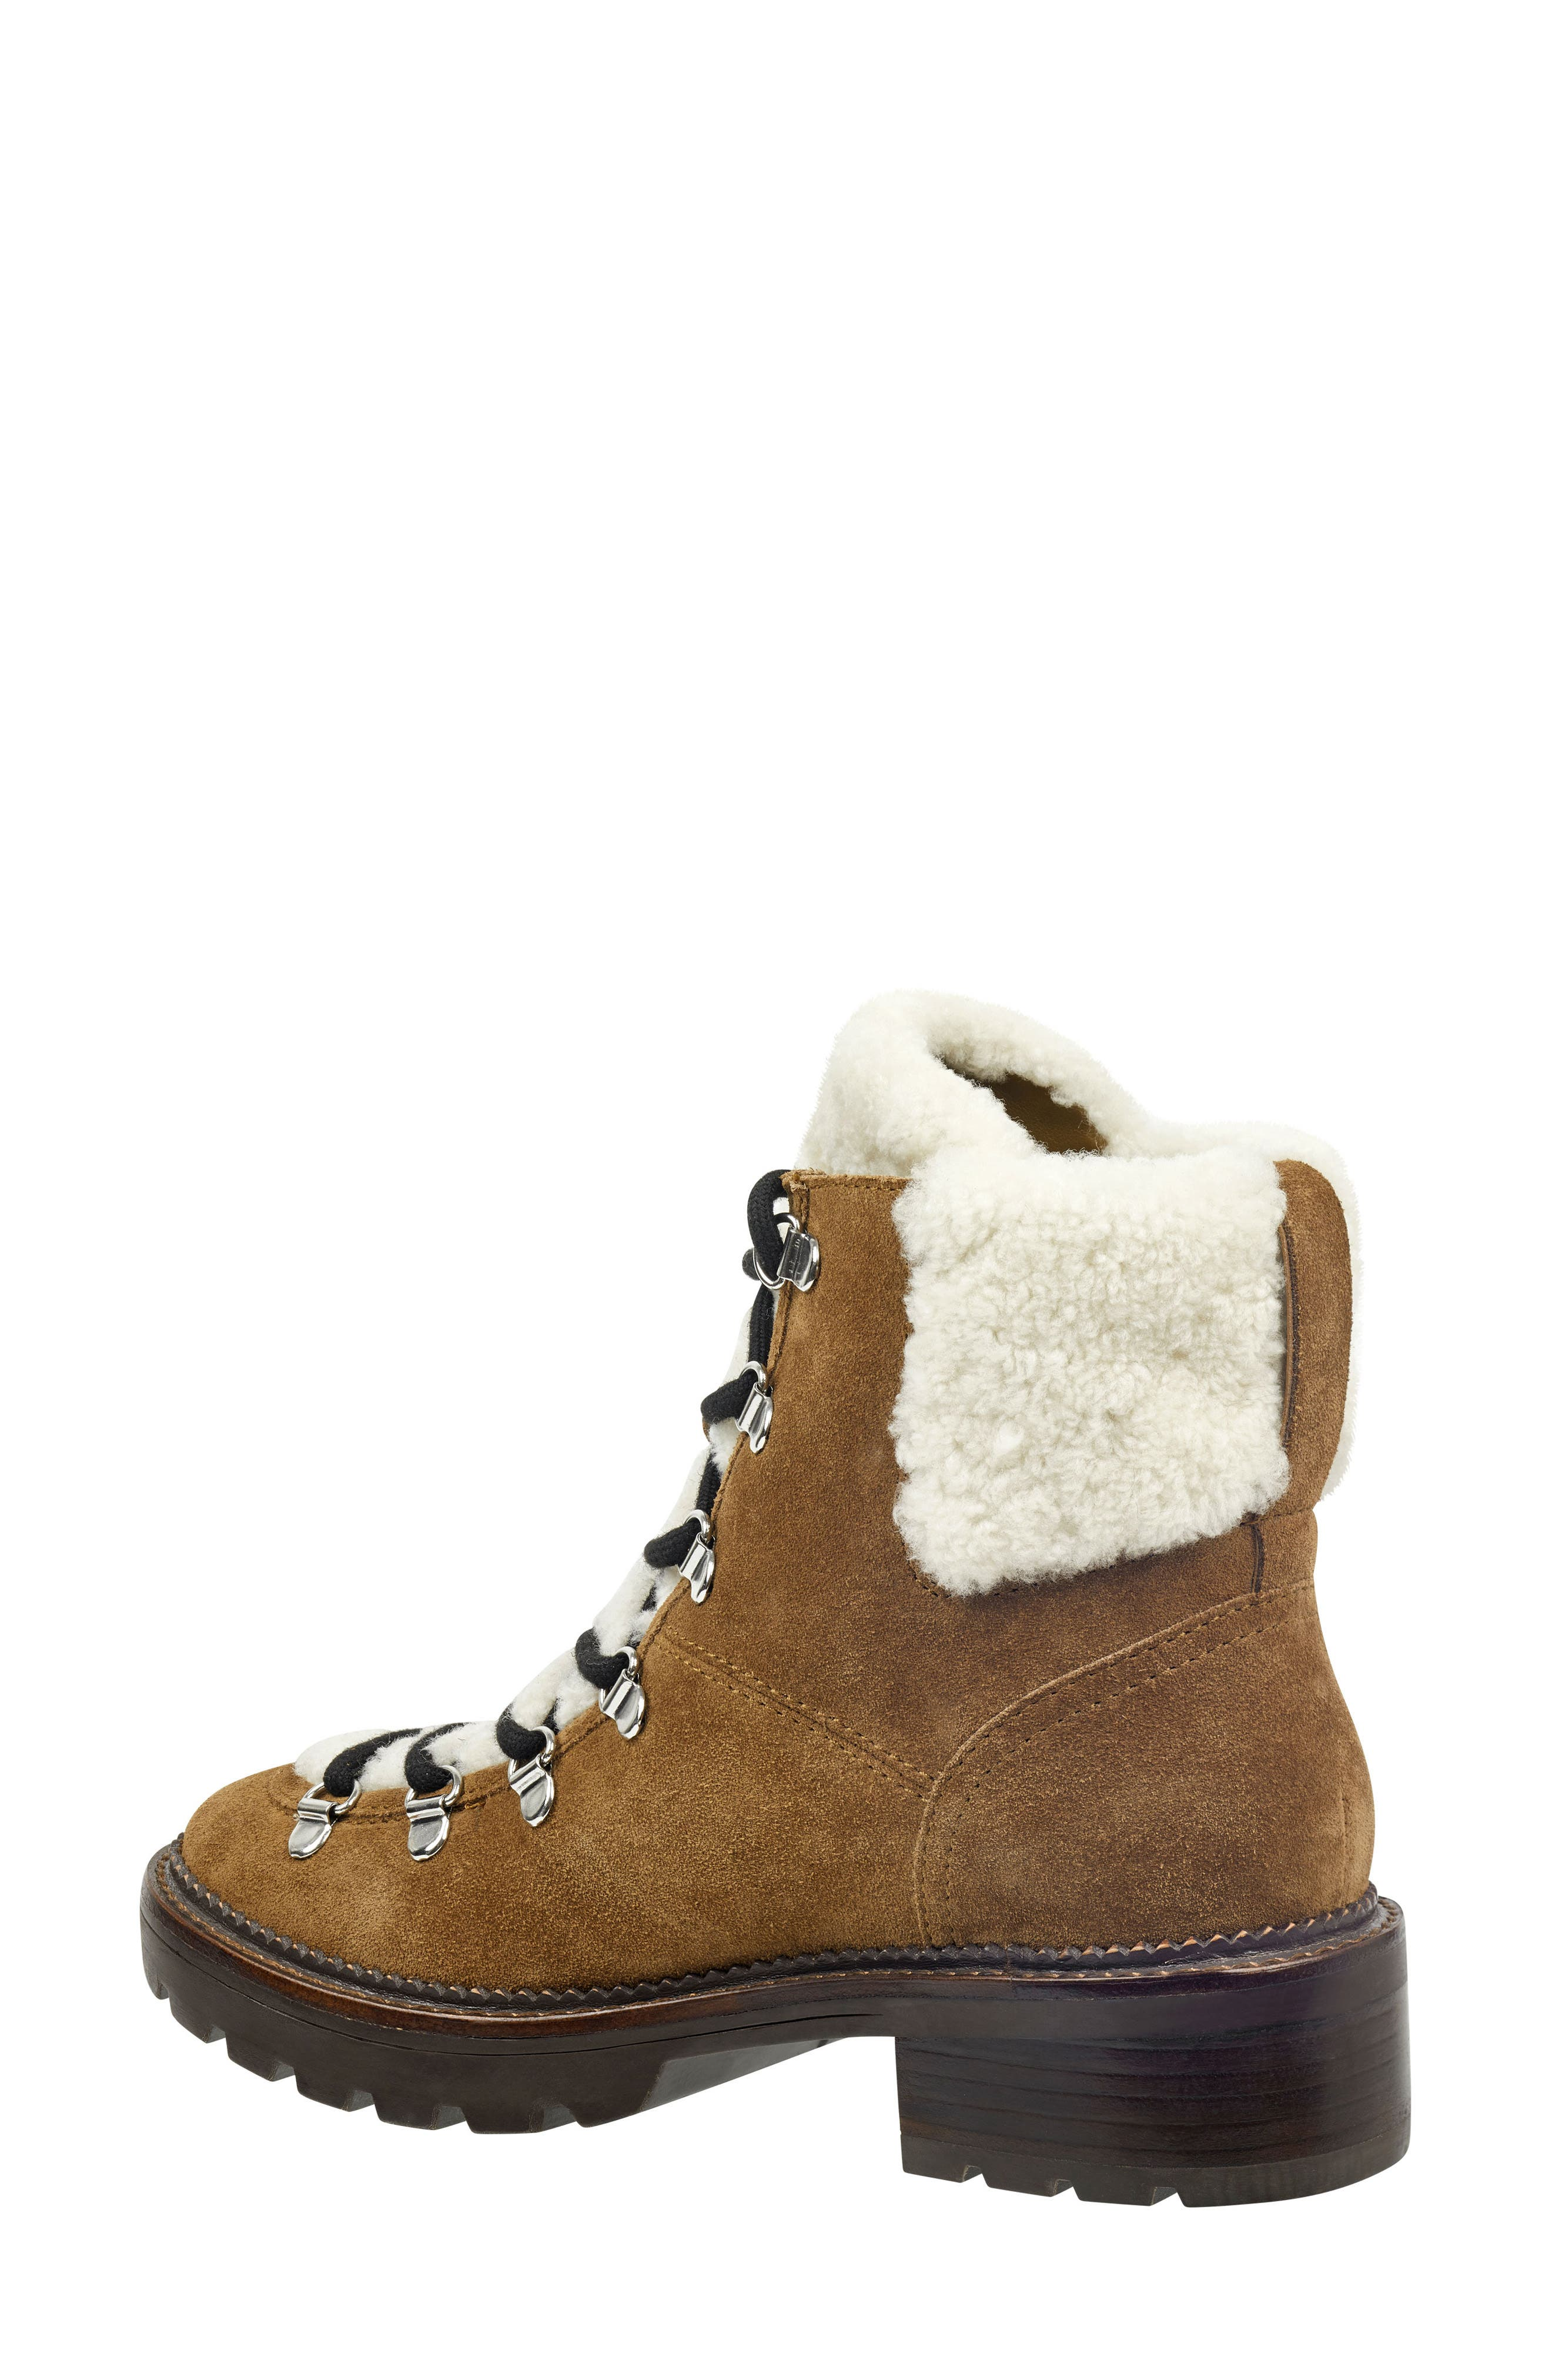 Capell Genuine Shearling Cuff Lace-Up Boot,                             Alternate thumbnail 2, color,                             BROWN SUEDE